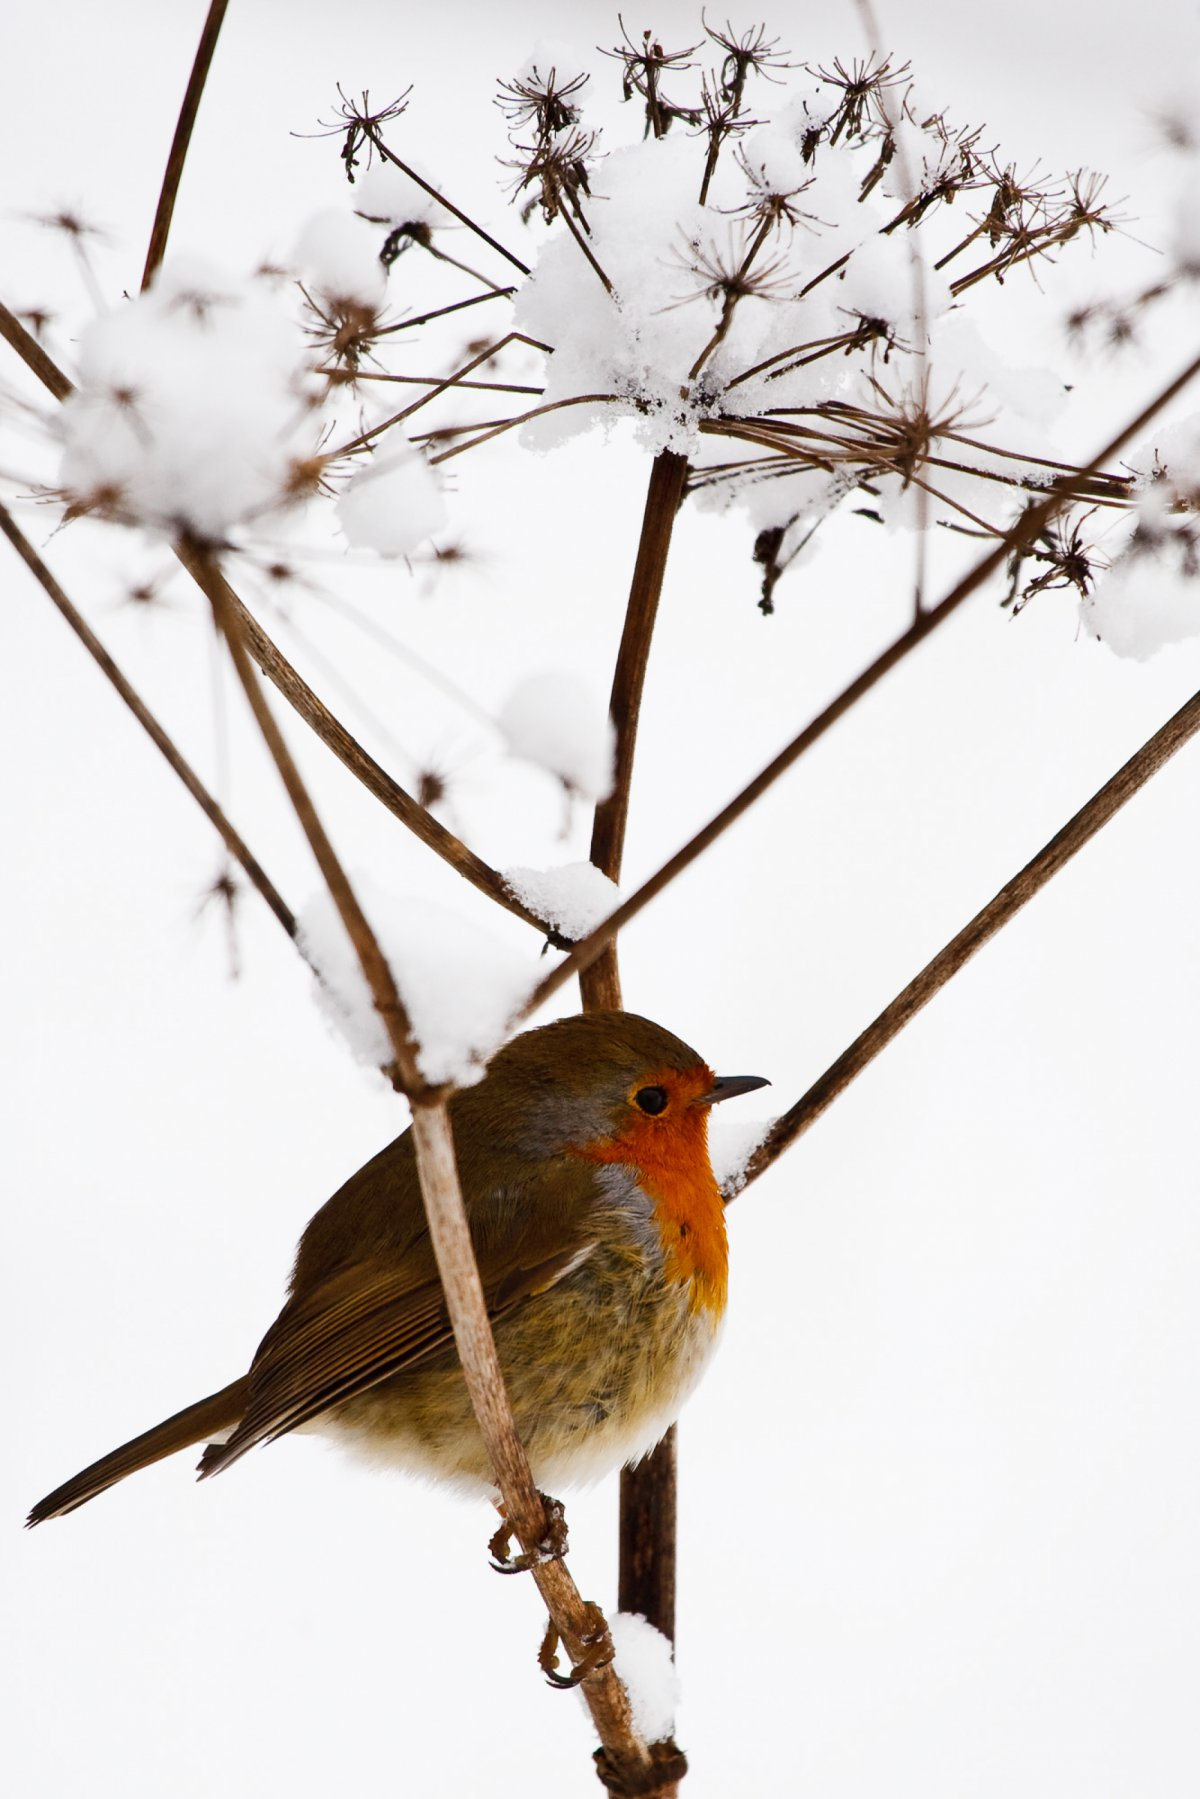 Robin perched on snowy branch